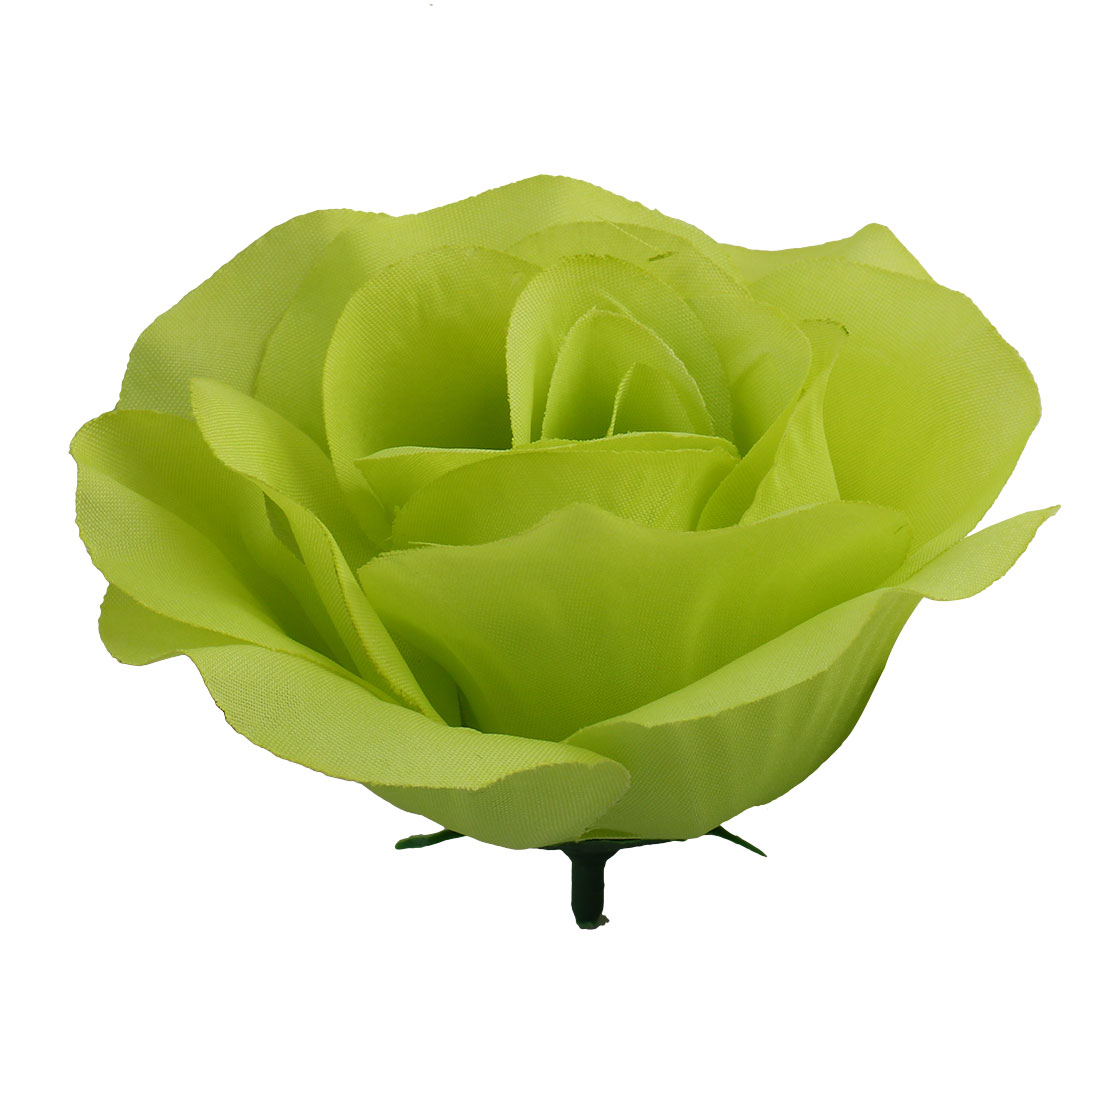 Living Room Table Office Handcraft Artificial Flower Rose Heads Decorations # 7